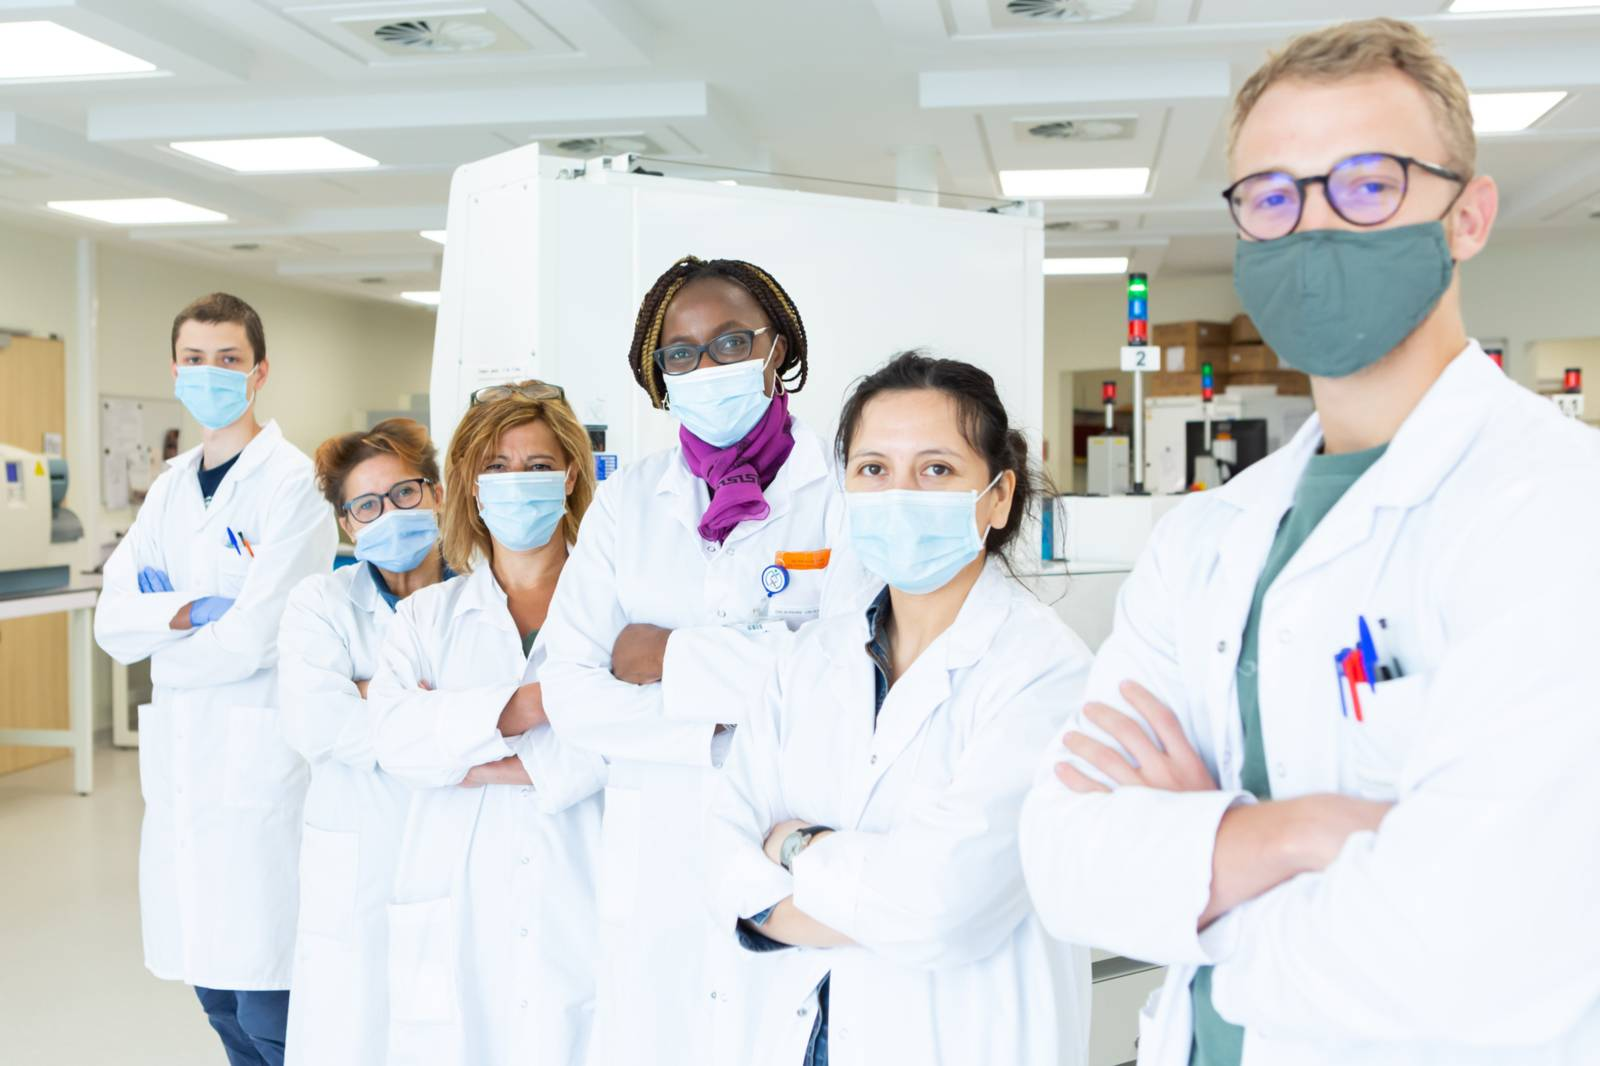 Dr. Véronique Yvette Miendje Deyi and her team working in their laboratory